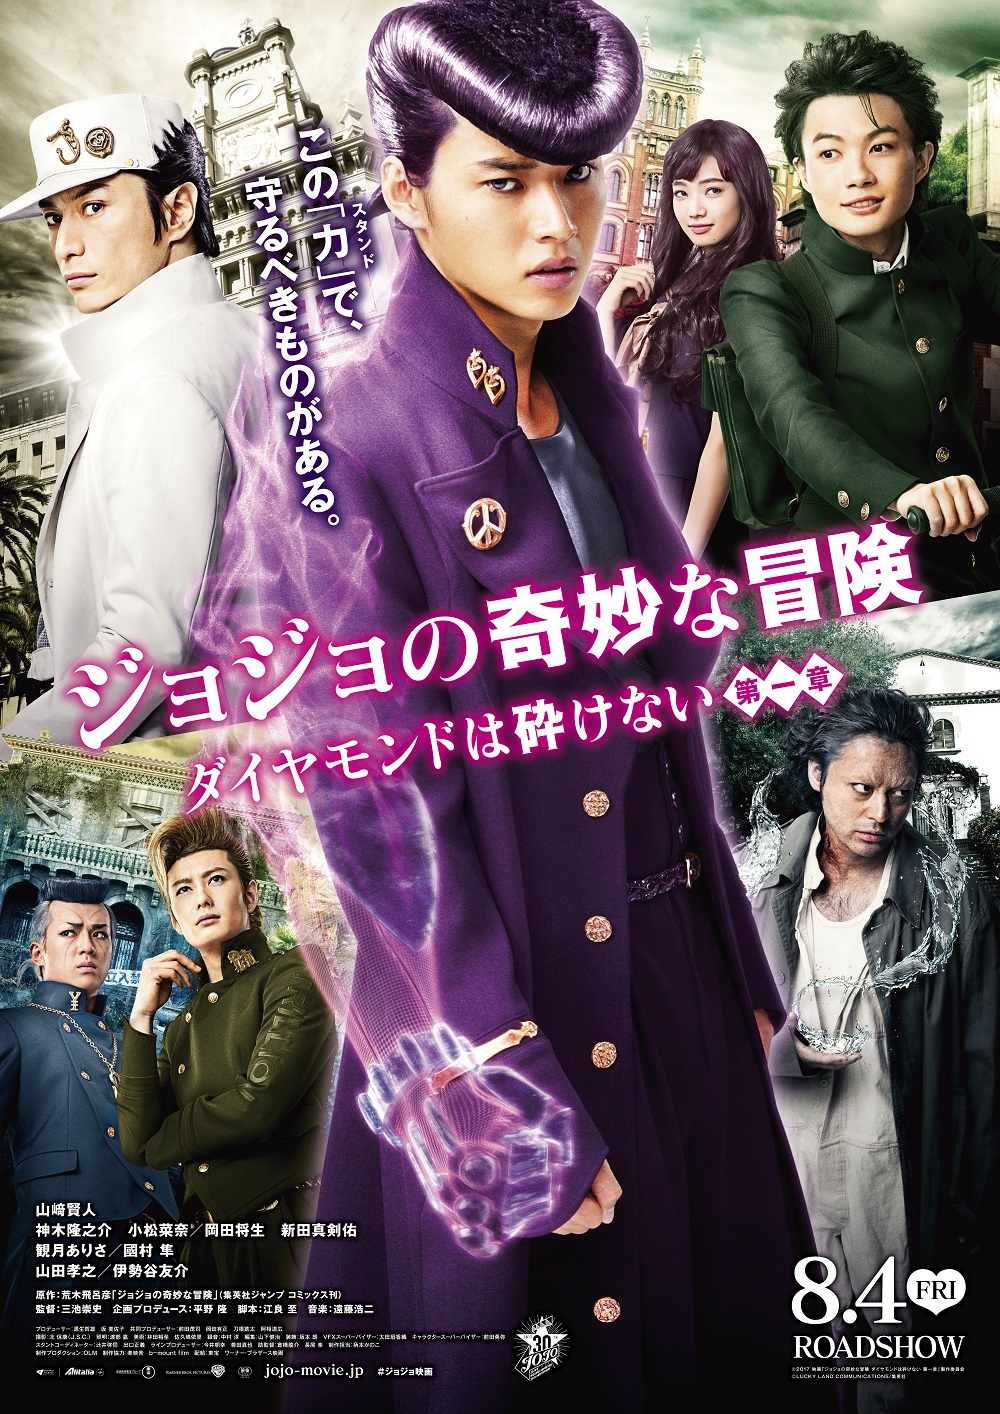 Movie Poster for the live action movie of Jojo's Bizzarre Adventure: Diamond is Unbreakable